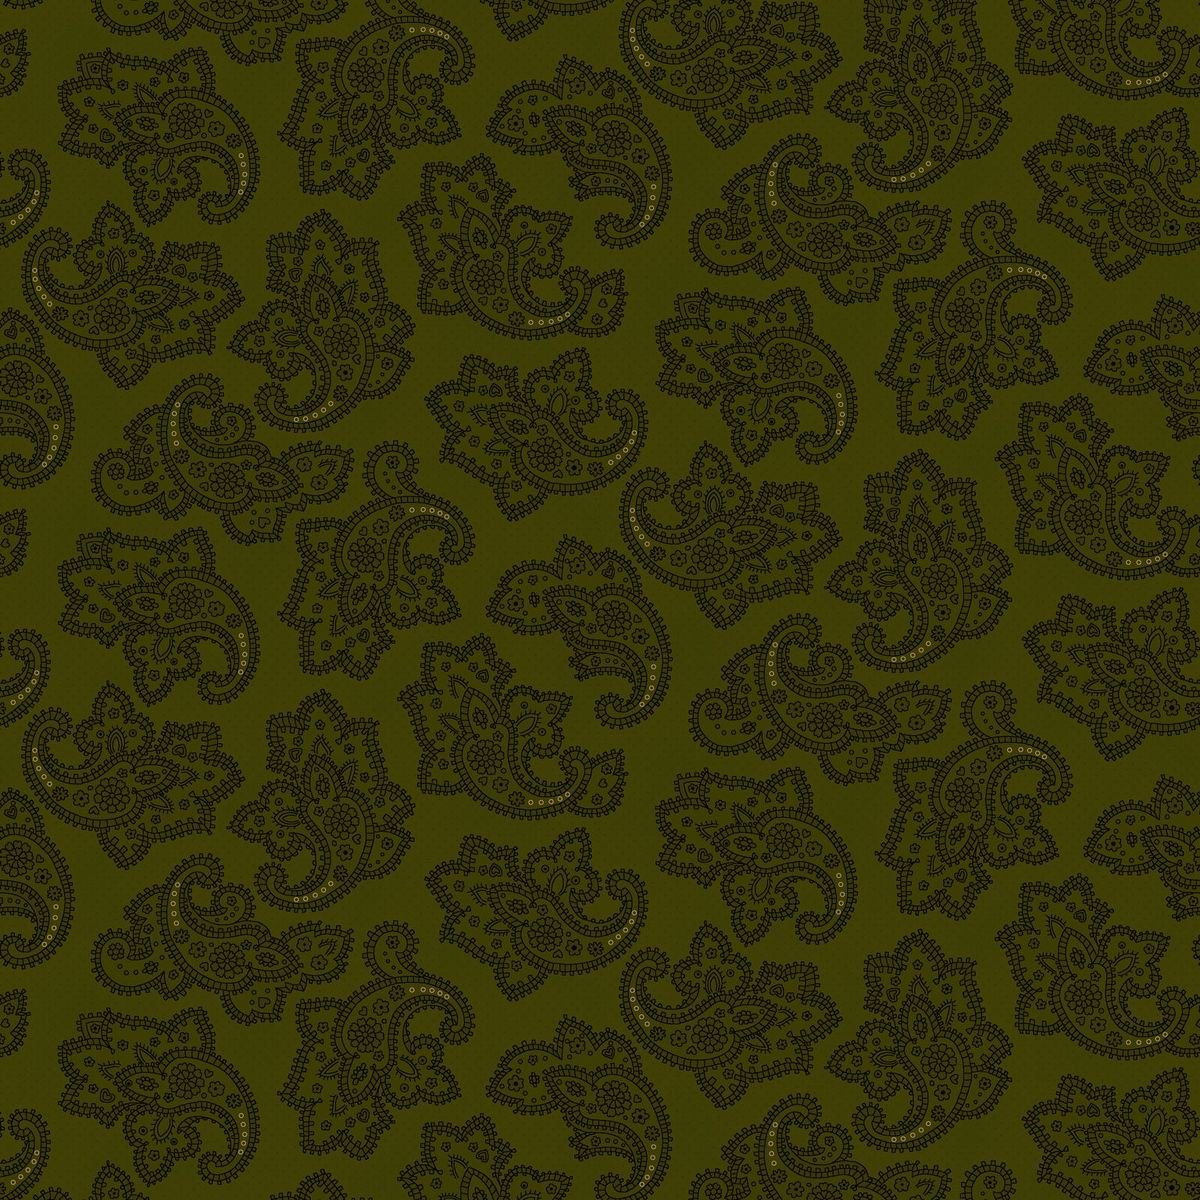 HG-Farmhouse Christmas 9674-66 Green - Delicate Paisley